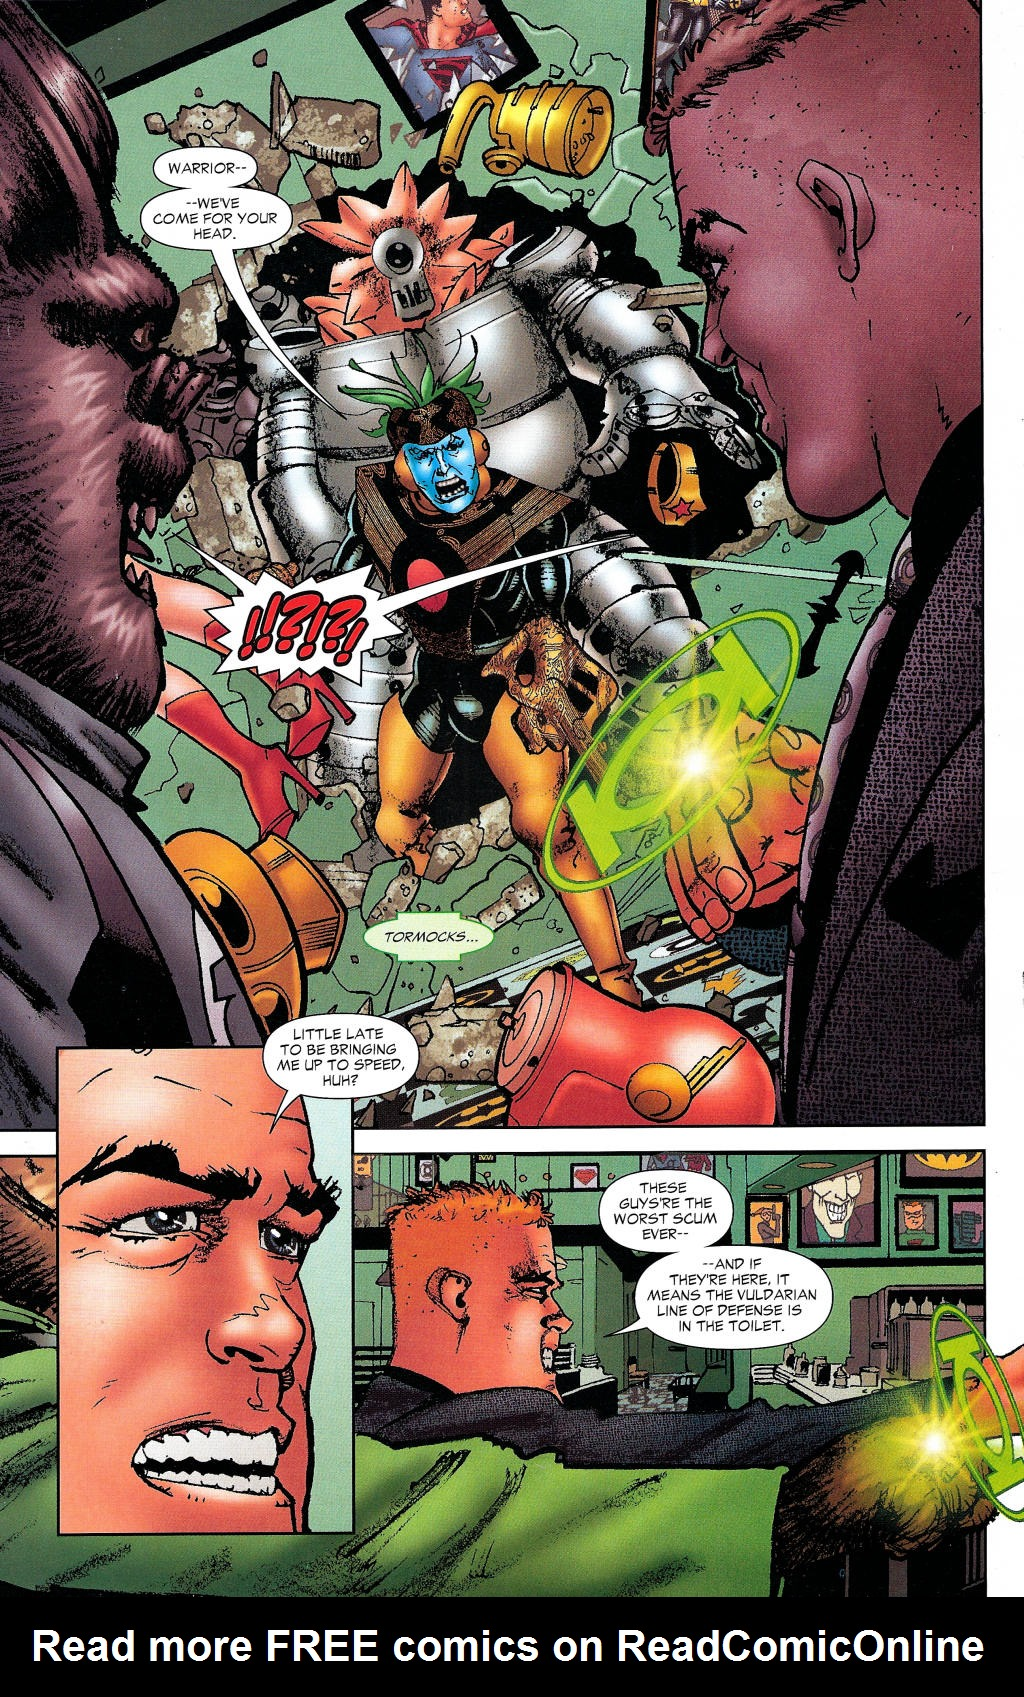 Read online Guy Gardner: Collateral Damage comic -  Issue #1 - 39